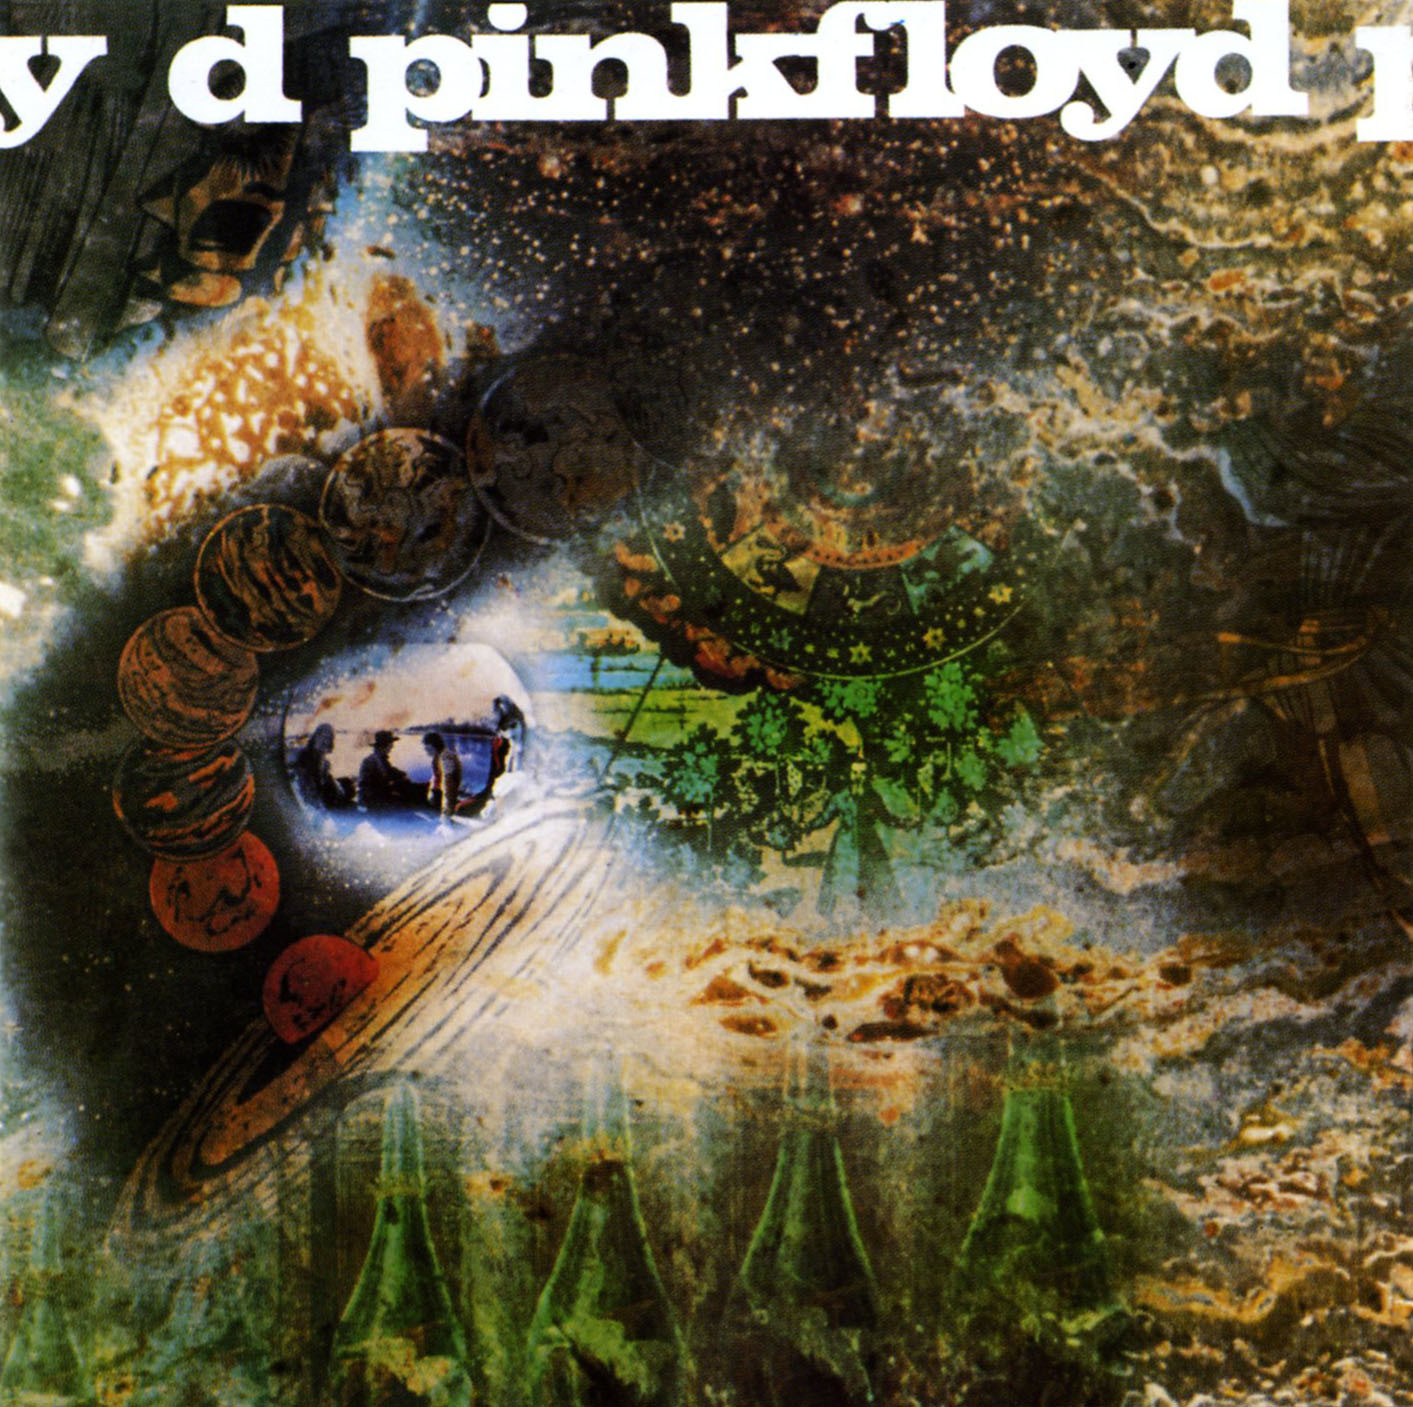 saucerful of secrets front HD Wallpaper